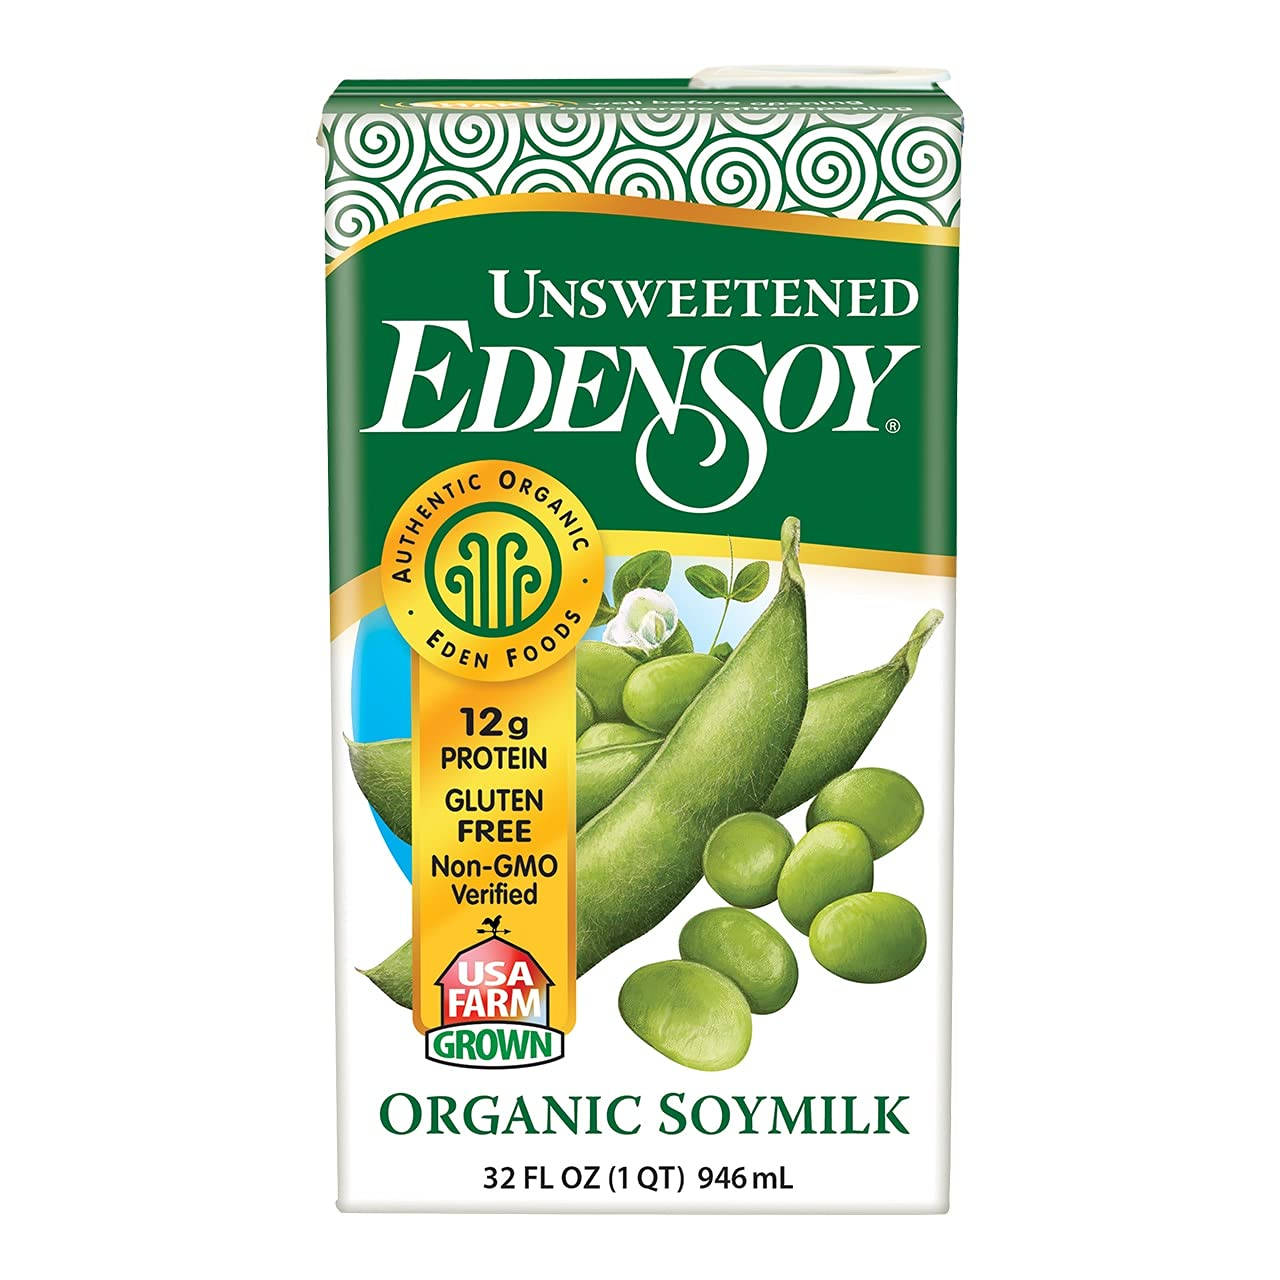 Eden Foods Organic Unsweetened Edensoy 12 OZ Of Sale item free 32 Pack